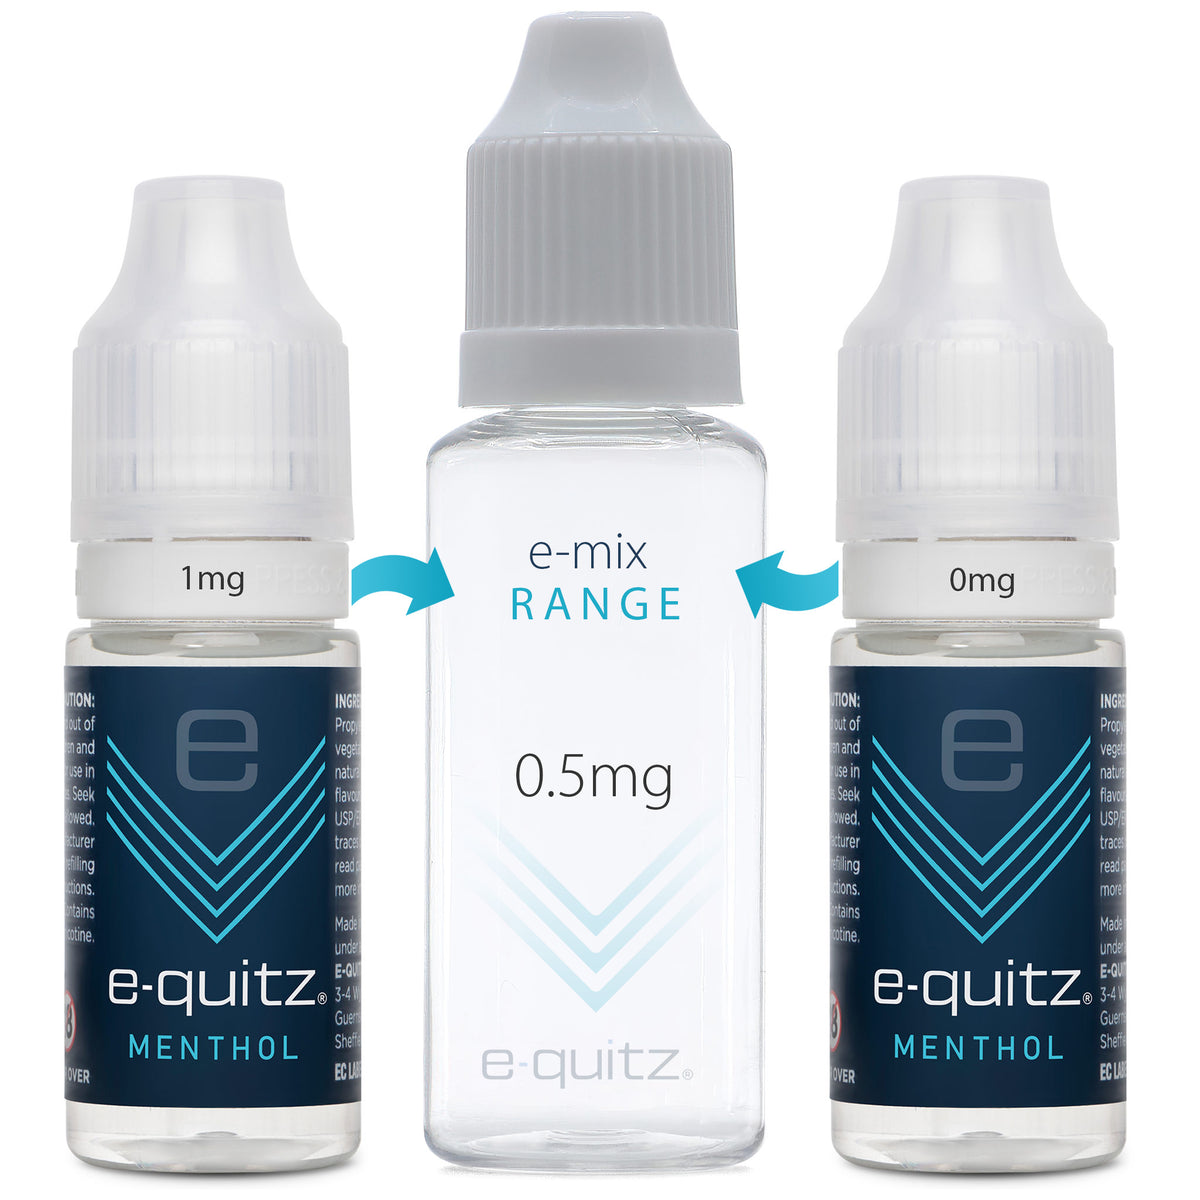 e-quitz 0.5mg menthol e-mix